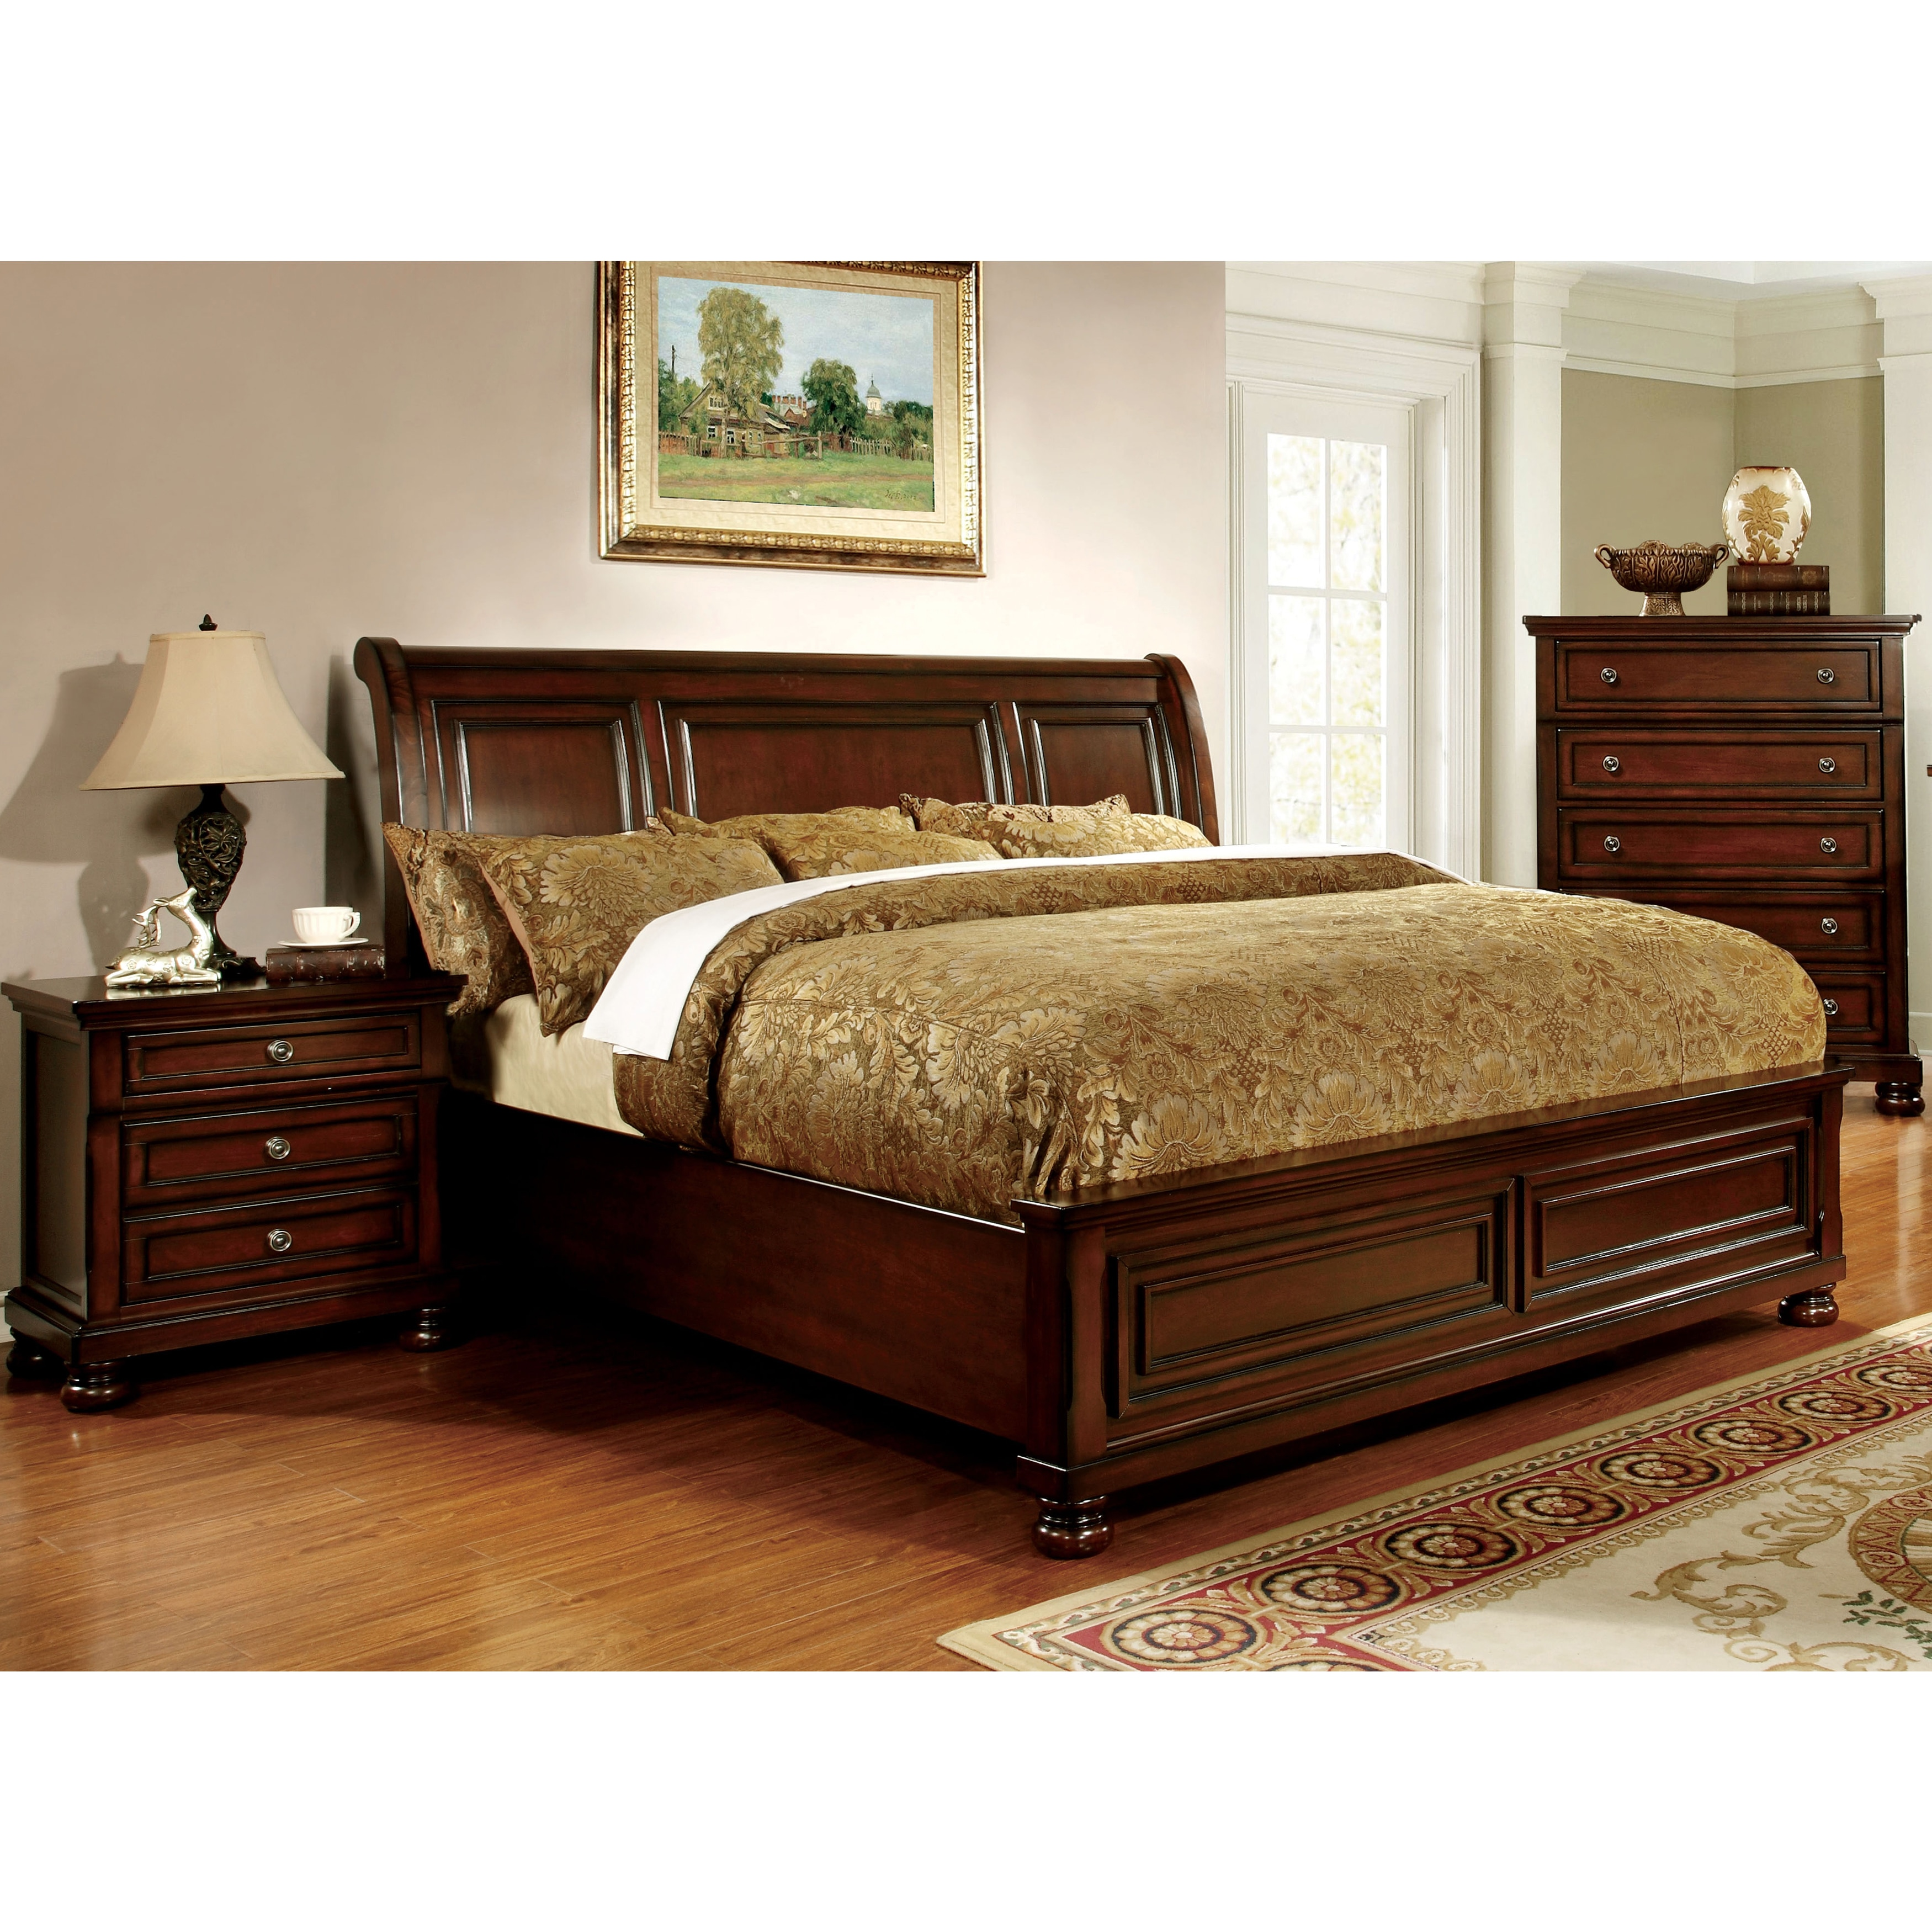 Overstocked Furniture: Shop Furniture Of America Barelle II Cherry 2-piece Bed